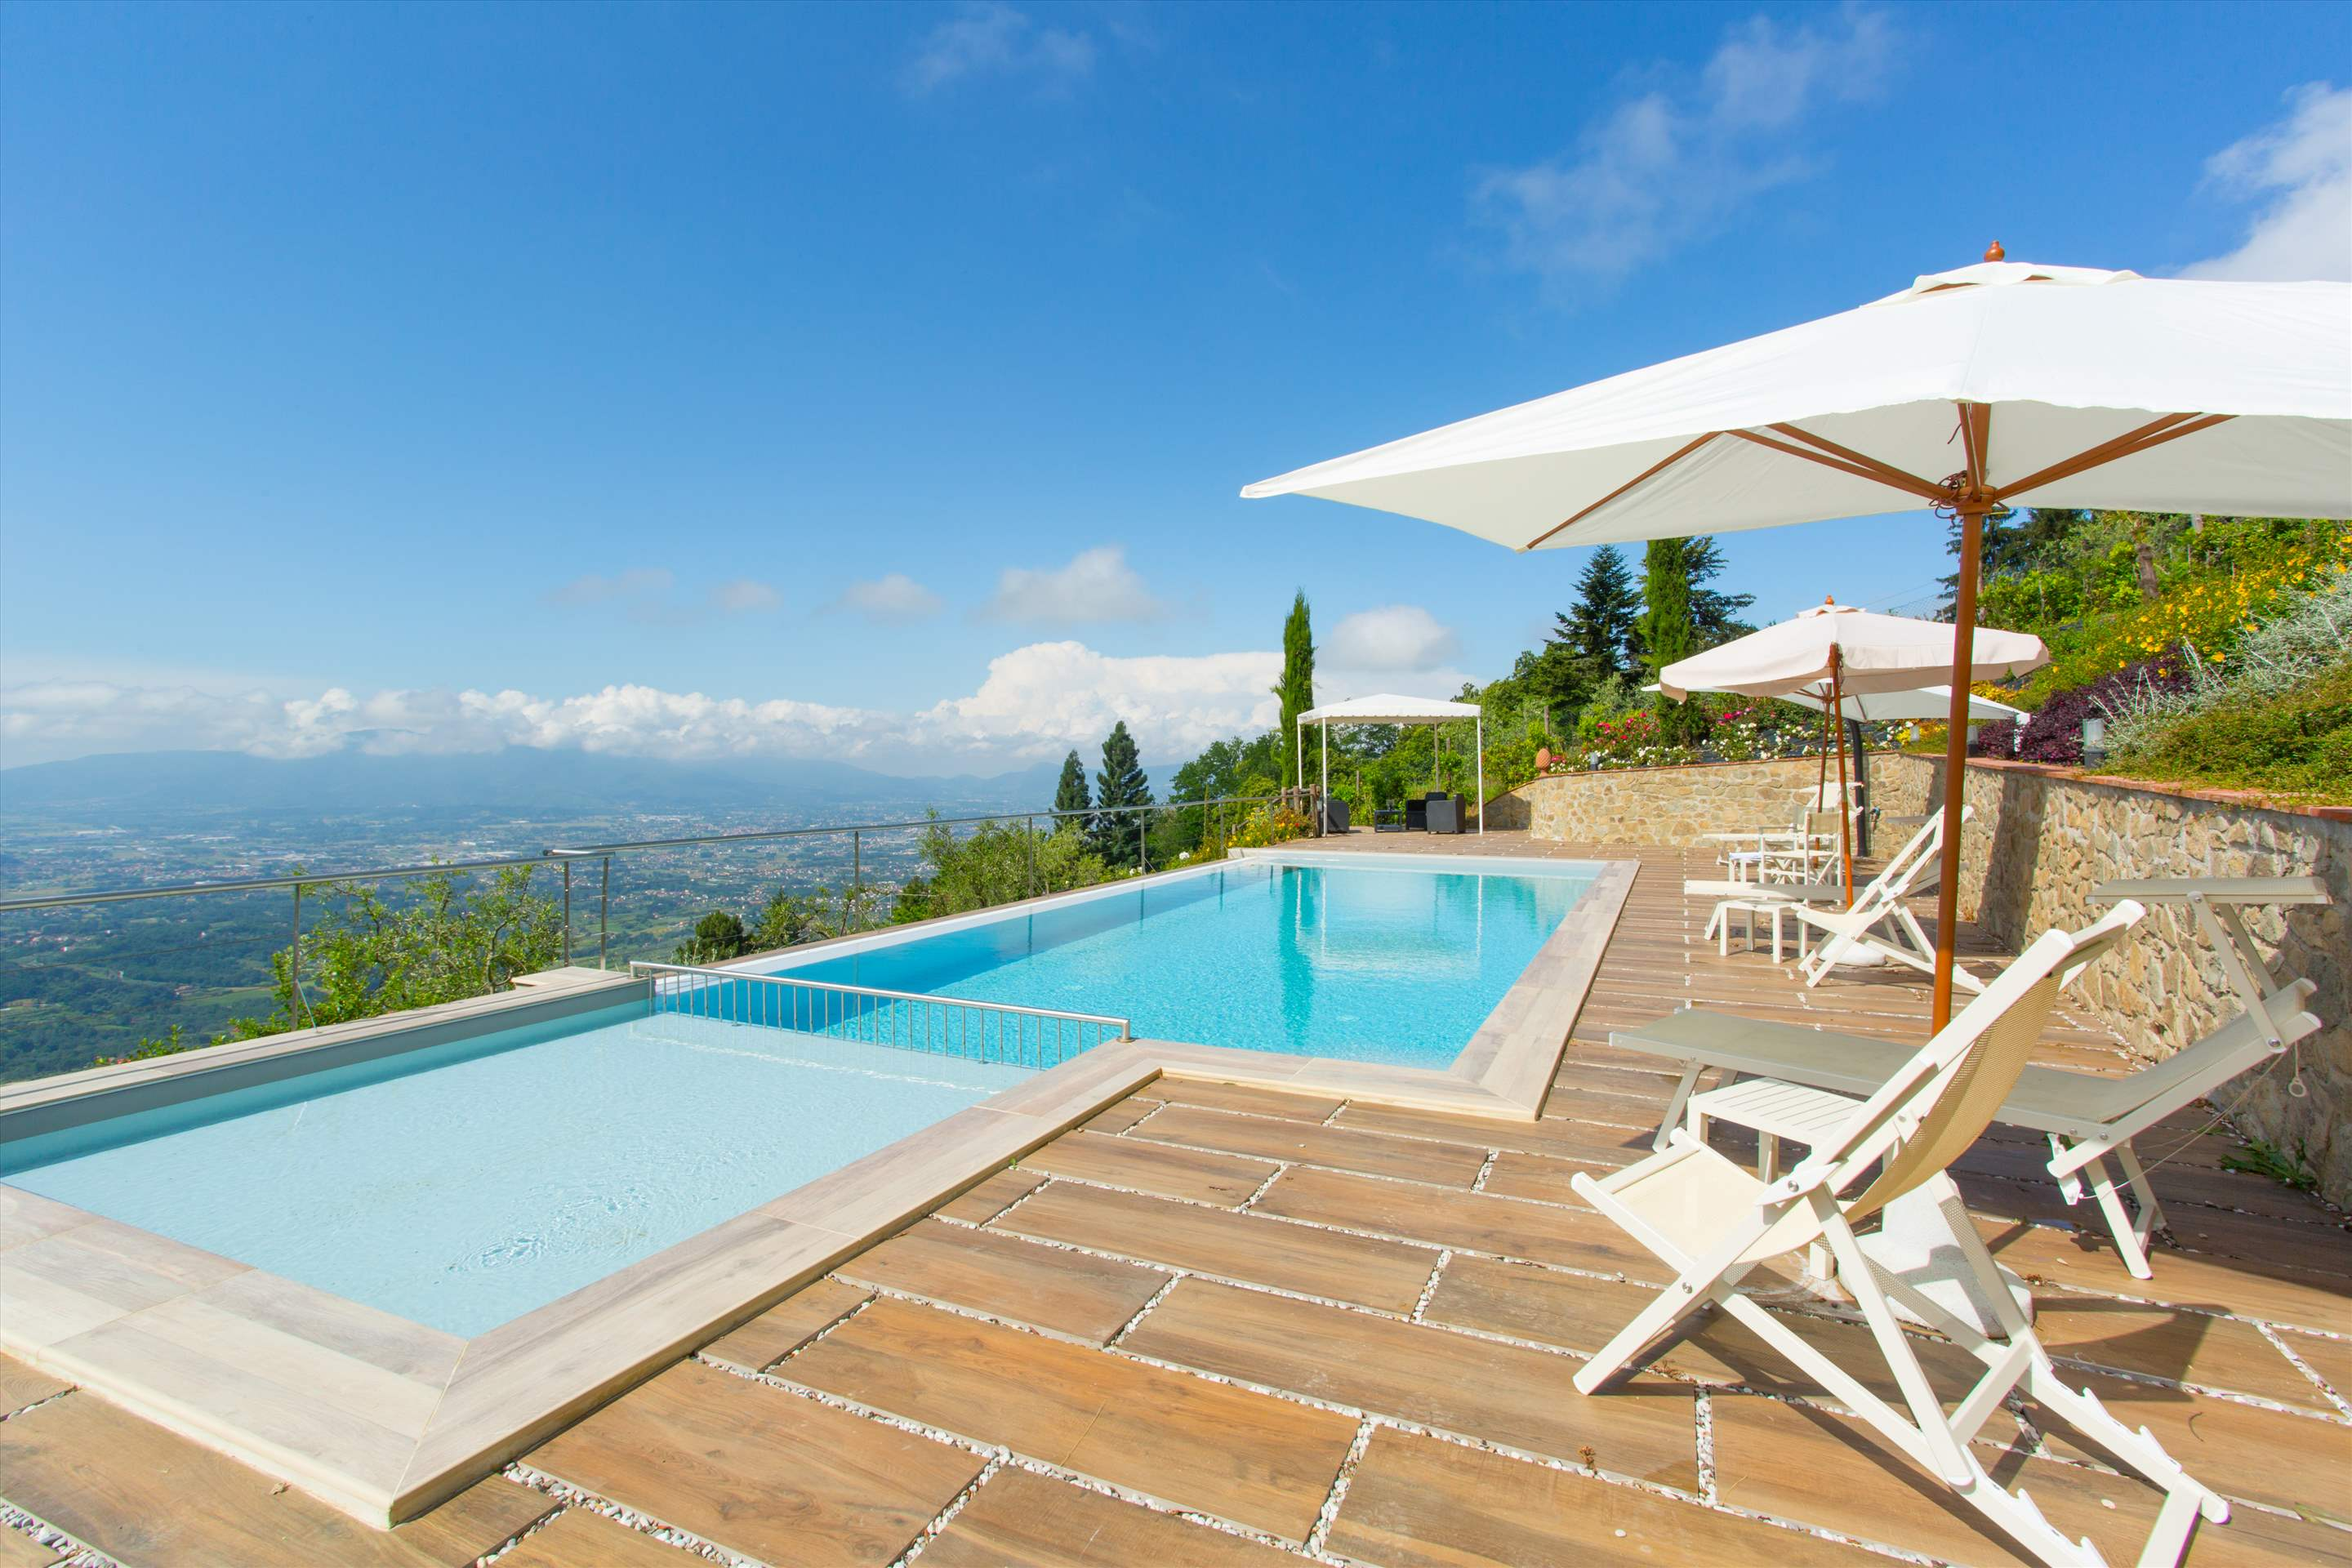 Villa Panorama, 3 bedroom villa in North Tuscany - Pisa & Lucca Area, Tuscany Photo #1